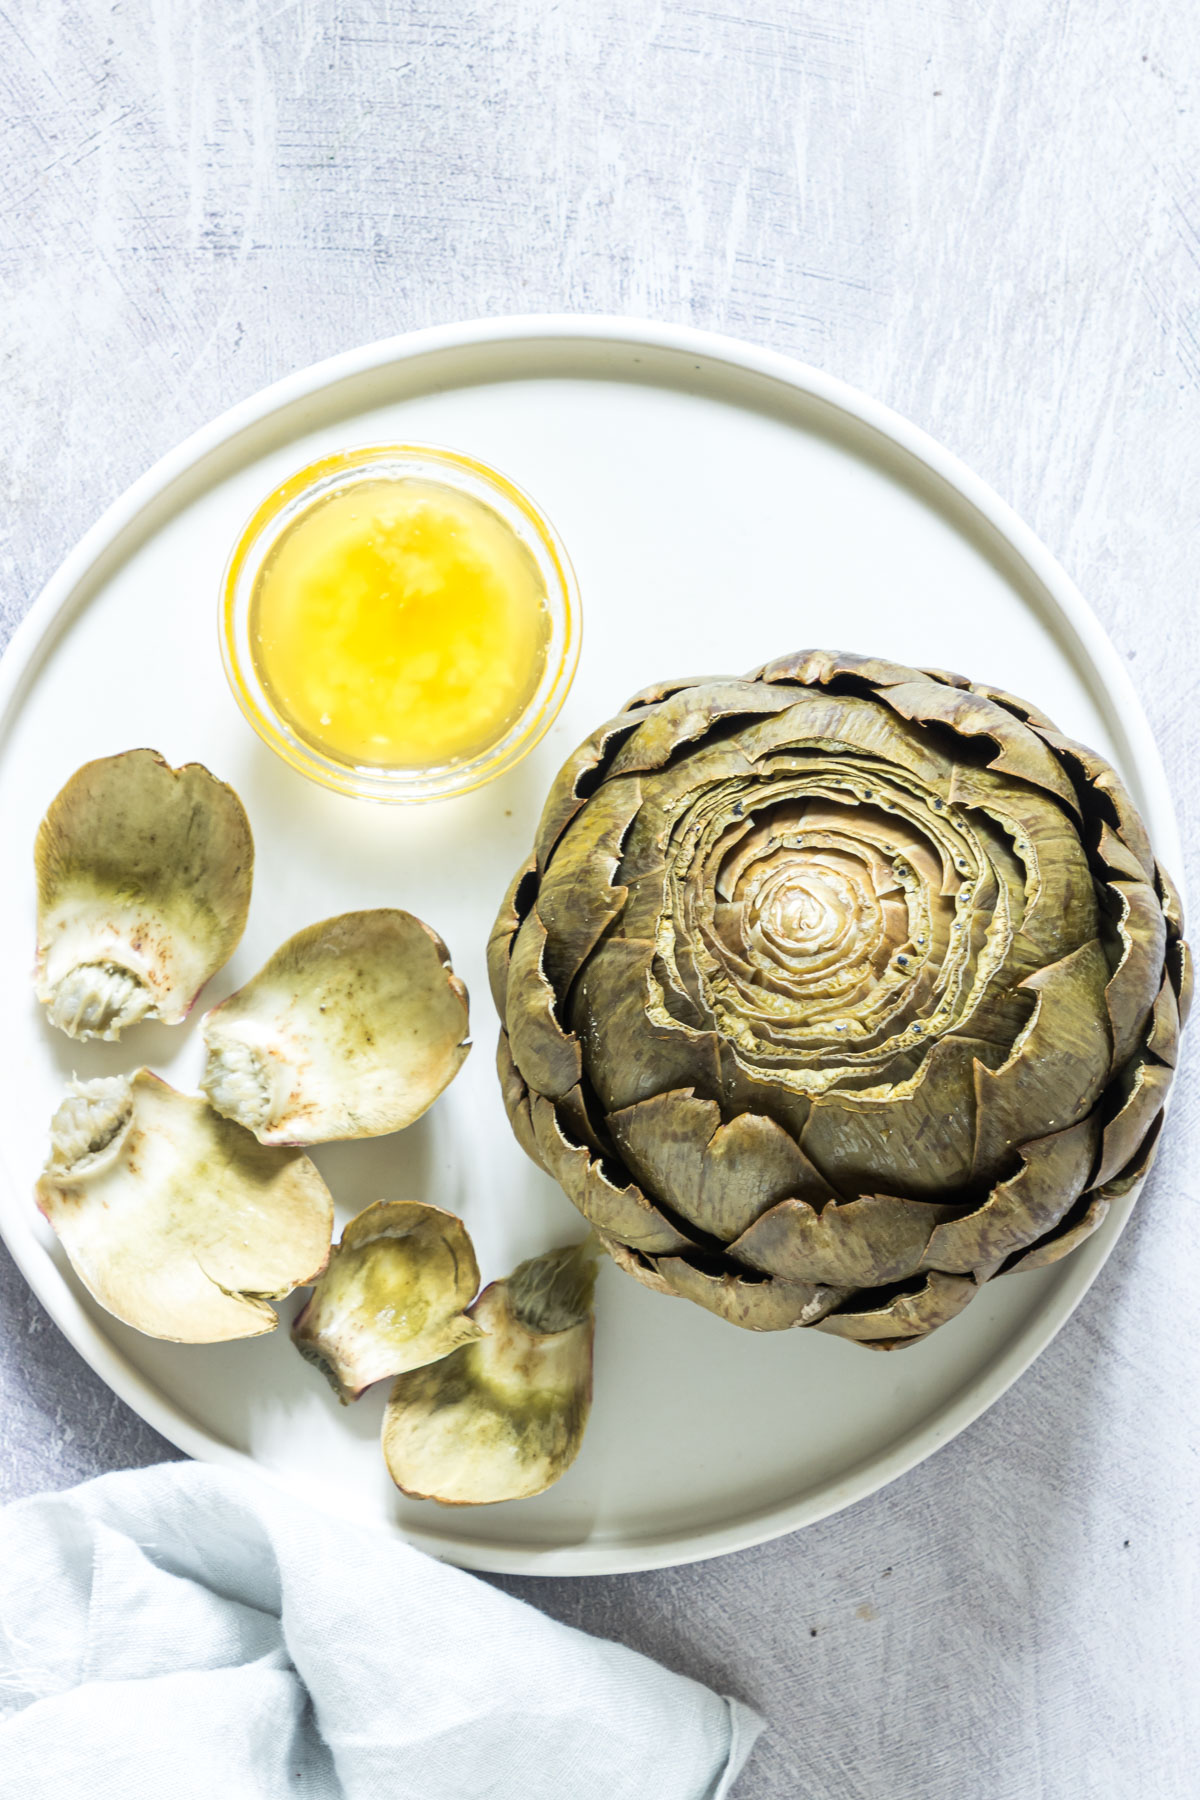 top down view of a completed artichoke served on a white plate